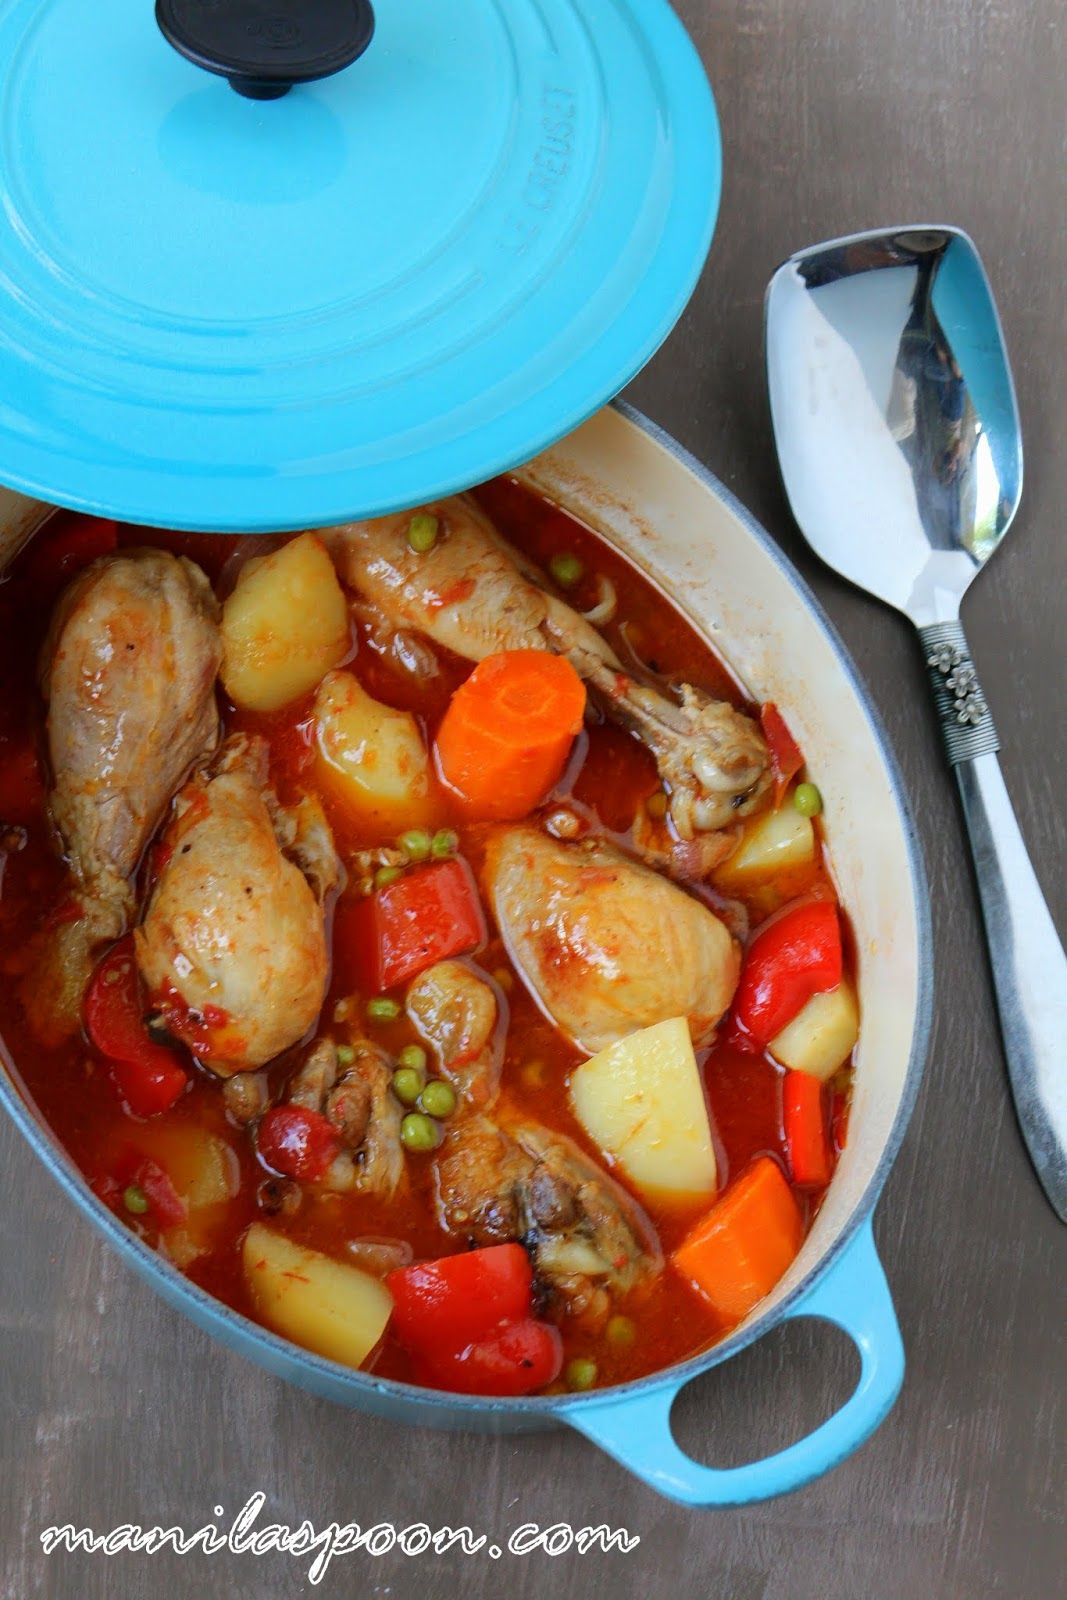 Tender And Delicious Chicken Slowly Simmered In Seasoned Tomato